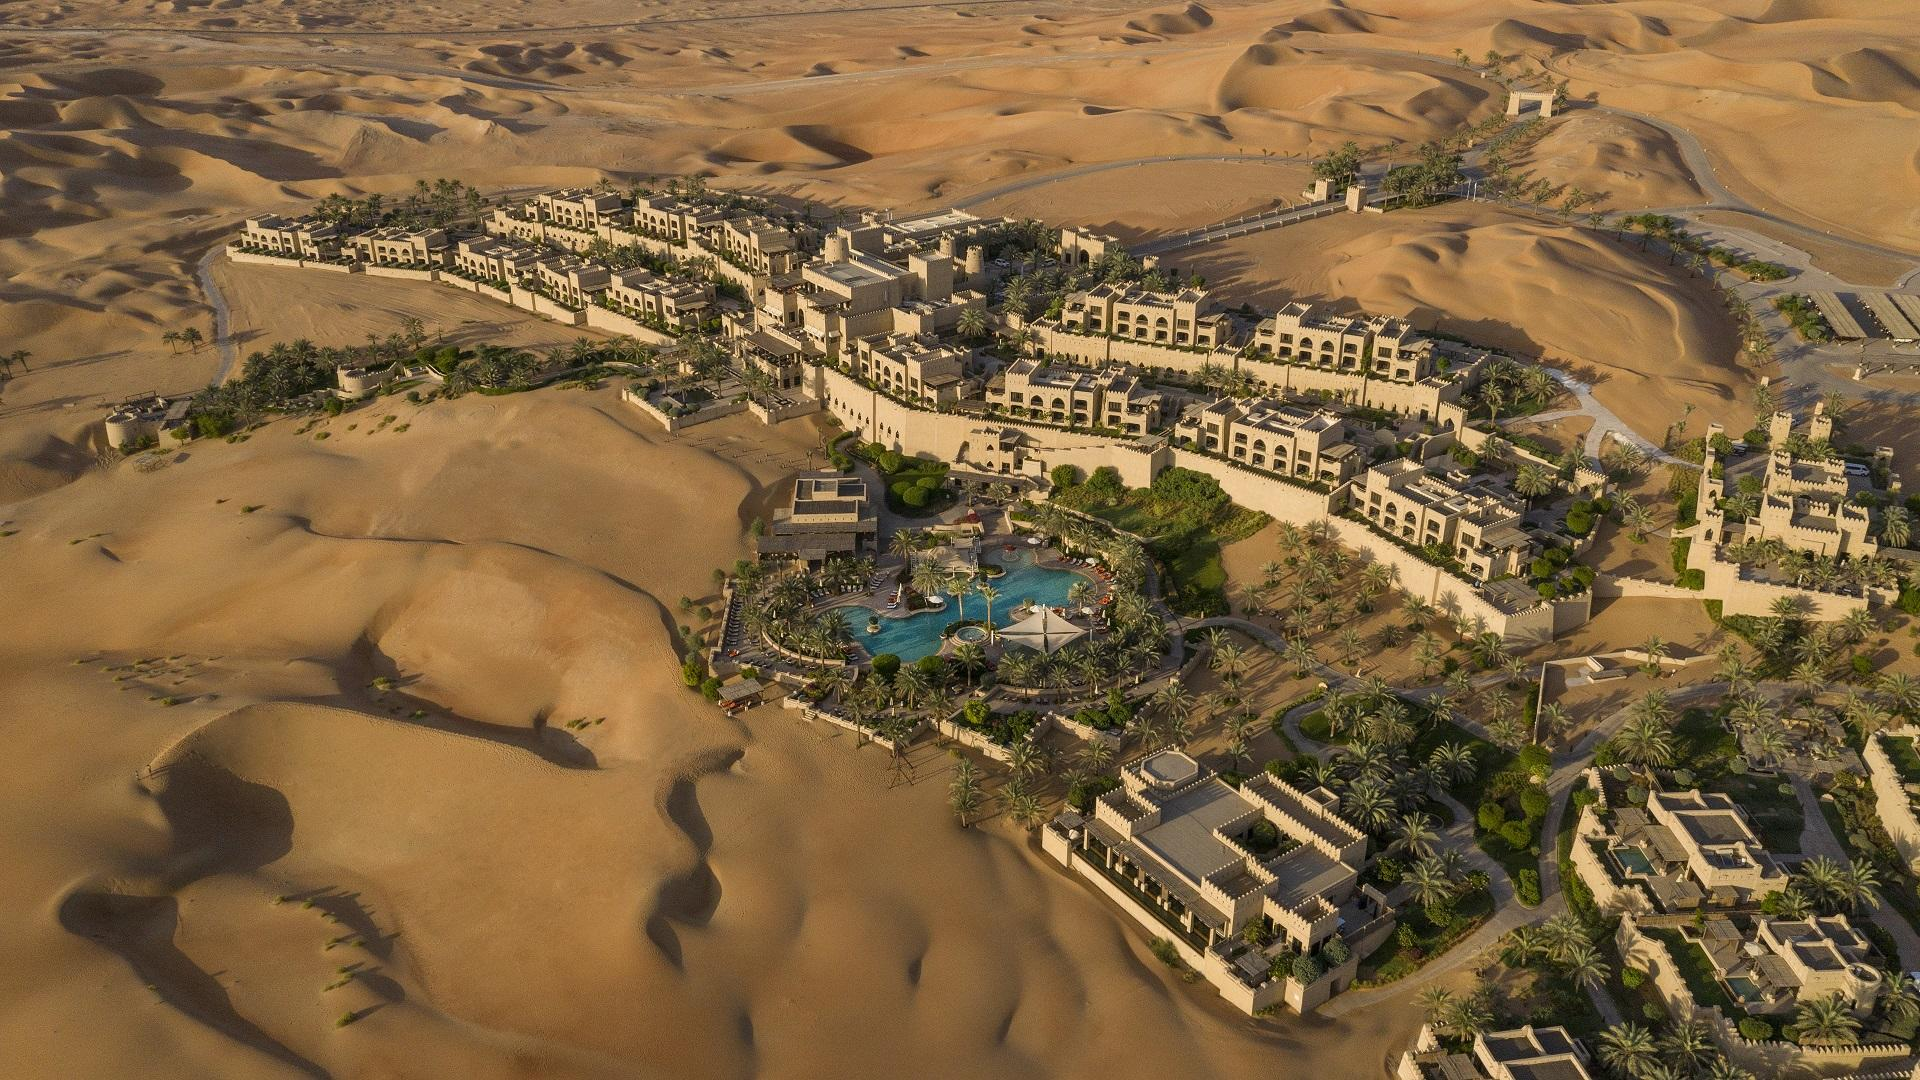 Qasr_Al_Sarab_Desert_Resort_by_Anantara_Exterior_View_ Aerial_View_Resort